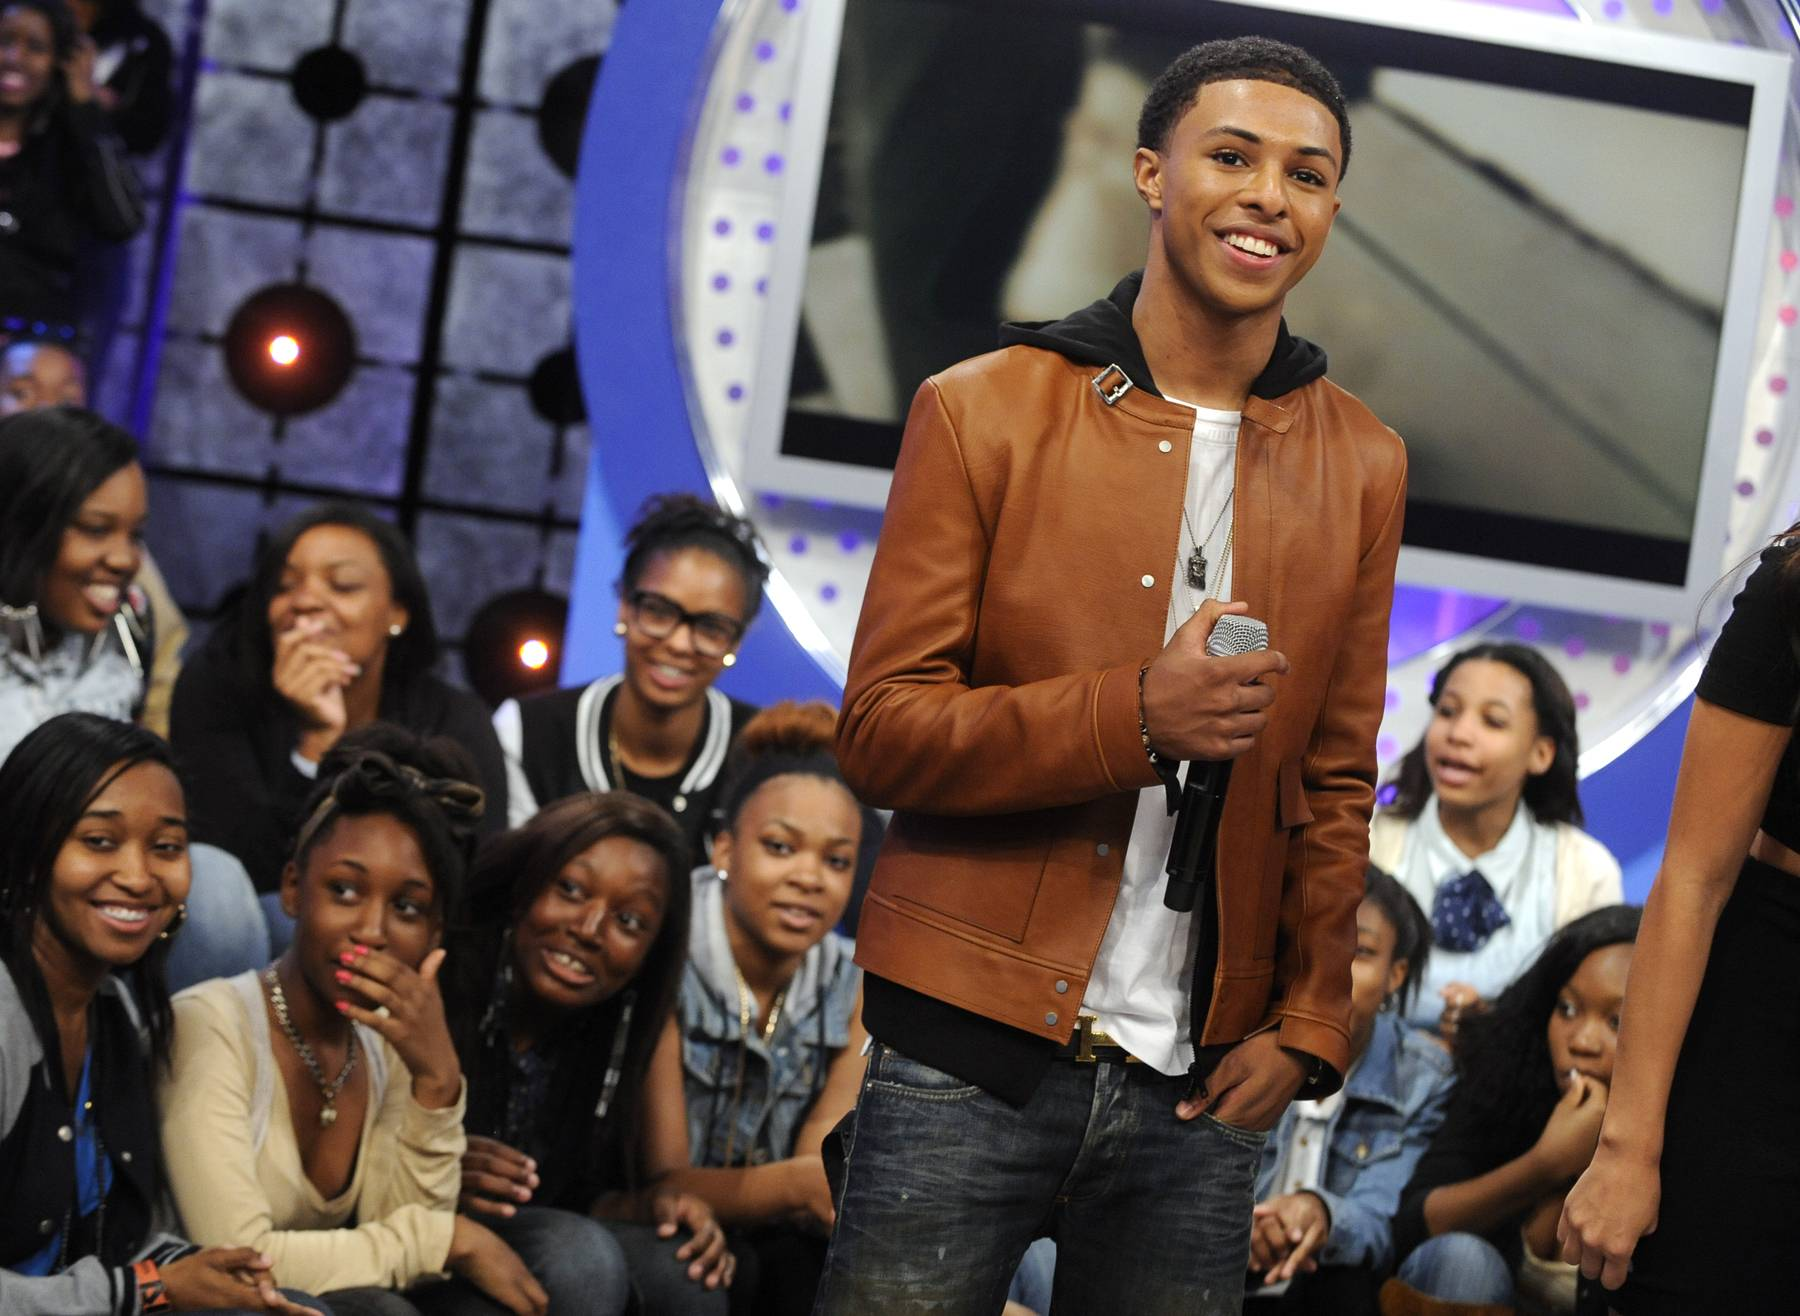 Diggy Does It for the Fans - Diggy Simmons at 106 & Park, May 22, 2012. (Photo: John Ricard / BET)